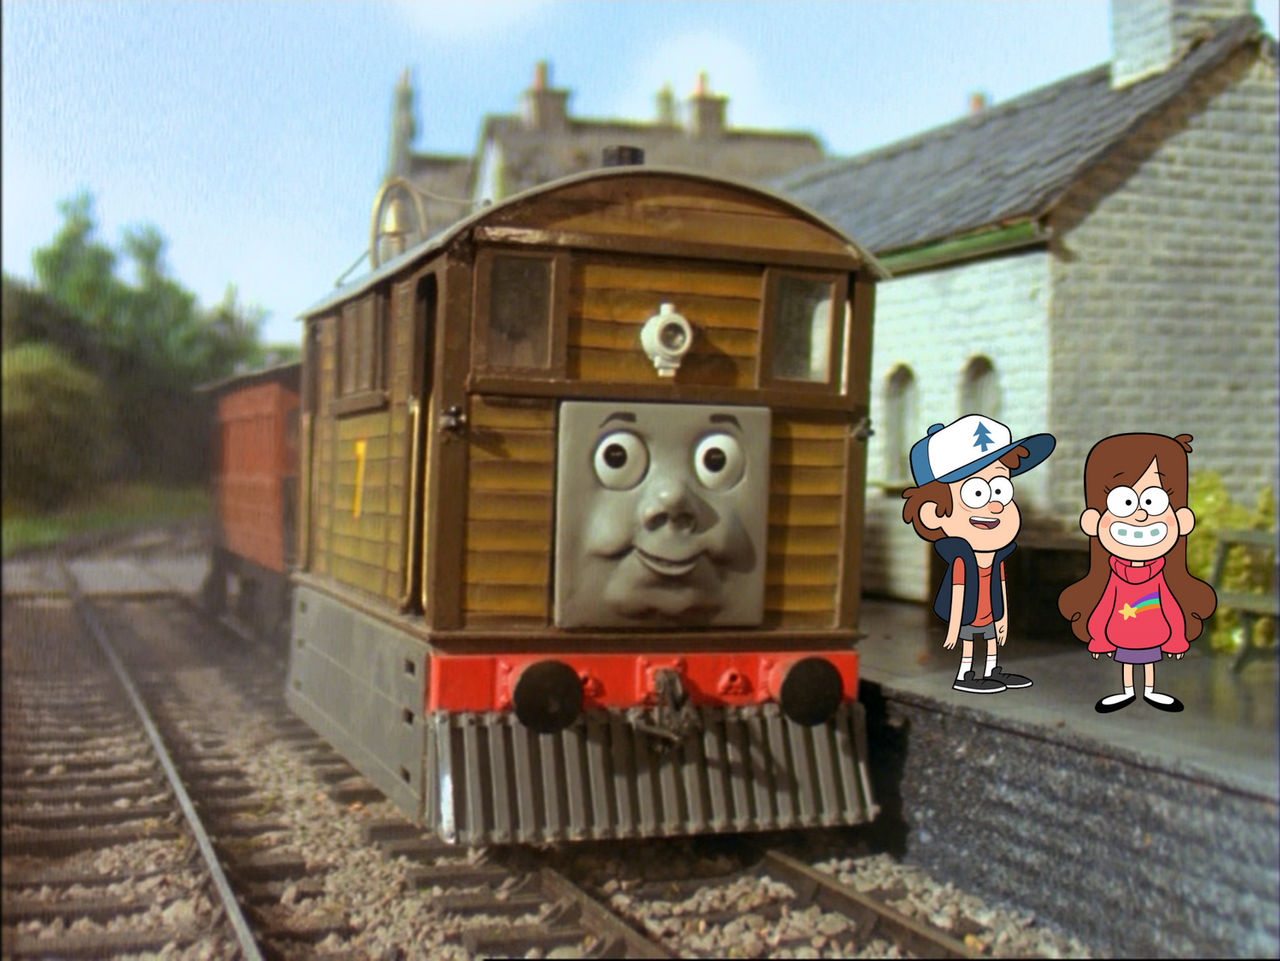 Dipper Pines and Mabel Pines meets Toby